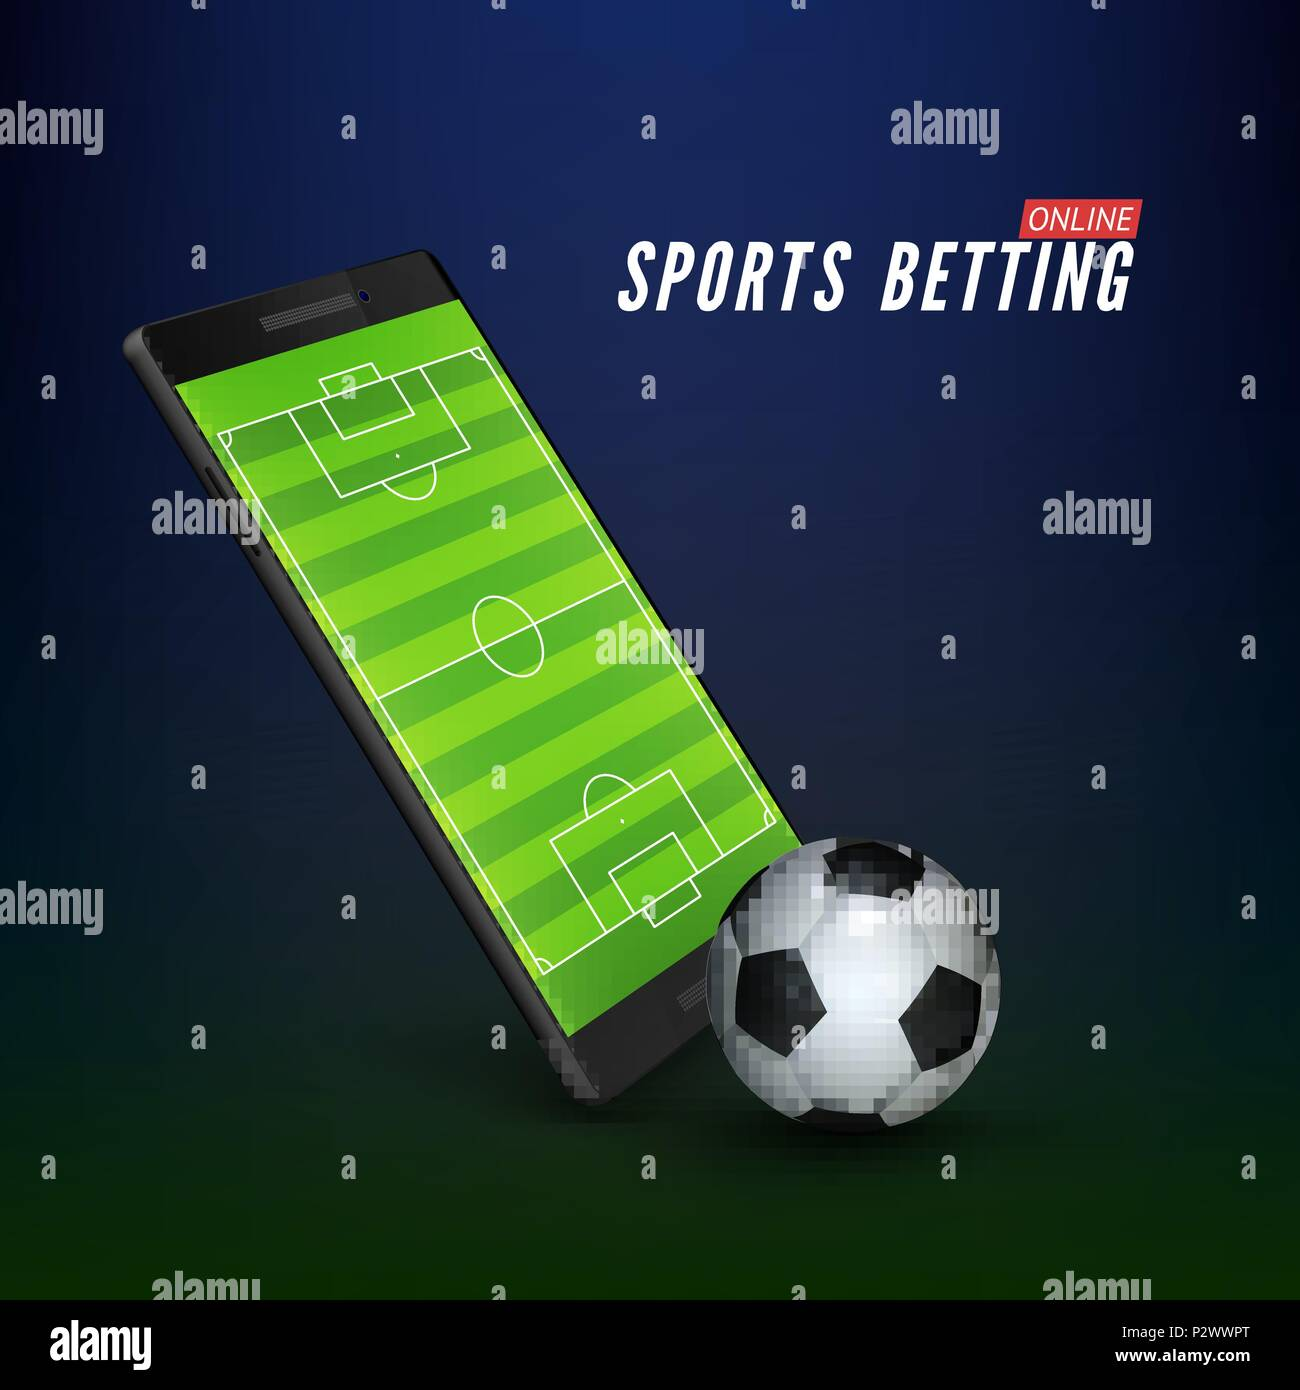 Sport betting online banner concept. app online bet on soccer. Mobile phone with soccer field on screen and realistik football ball in front. Vector i - Stock Vector